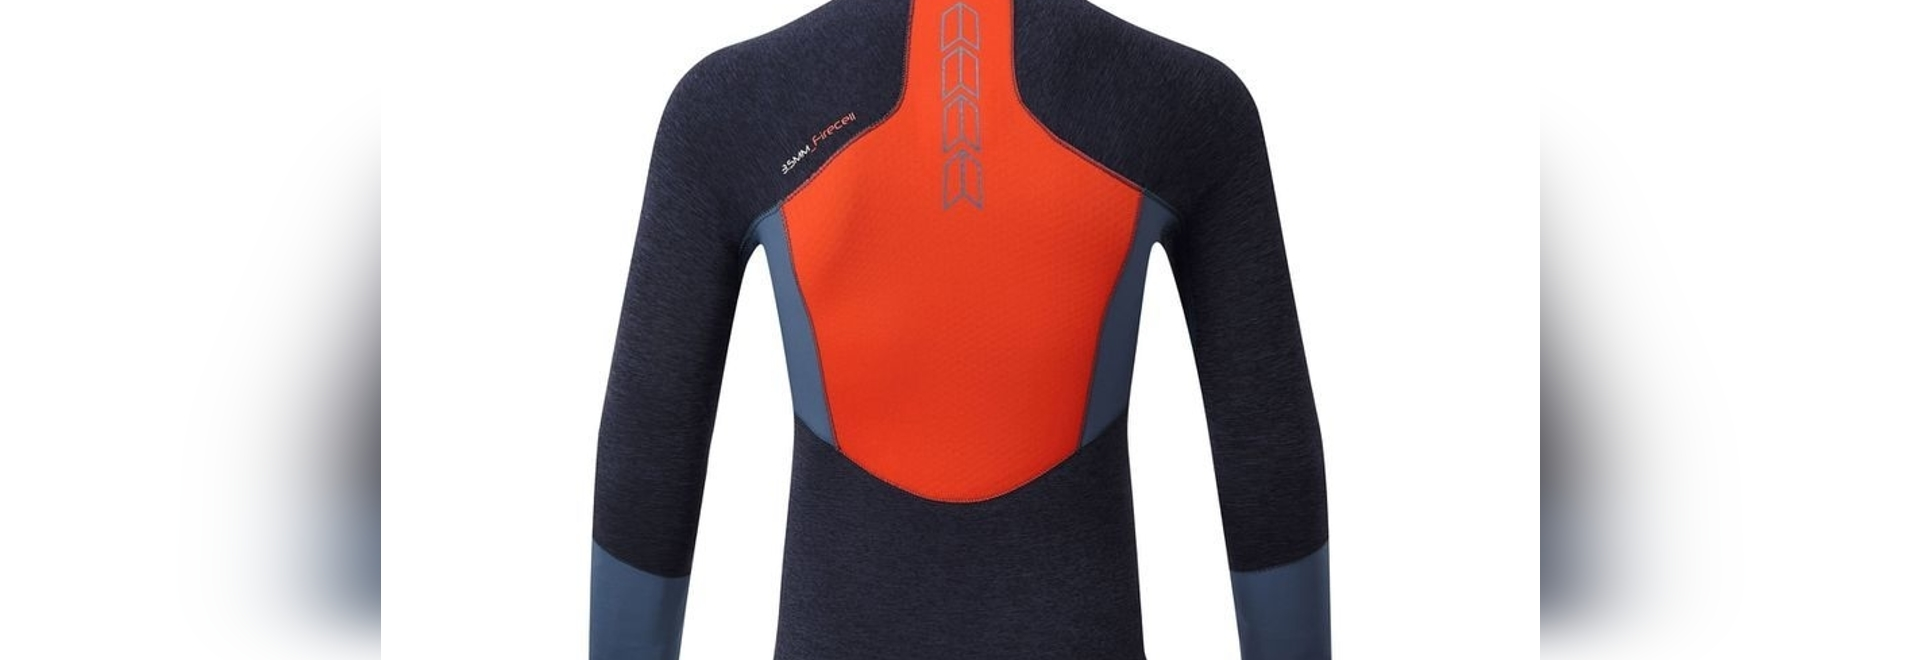 Gill's FireCell wetsuit Race Top is loaded with great features, aside from the heat-retaining property of the core panels. The design and materials provide outstanding mobility and warmth.